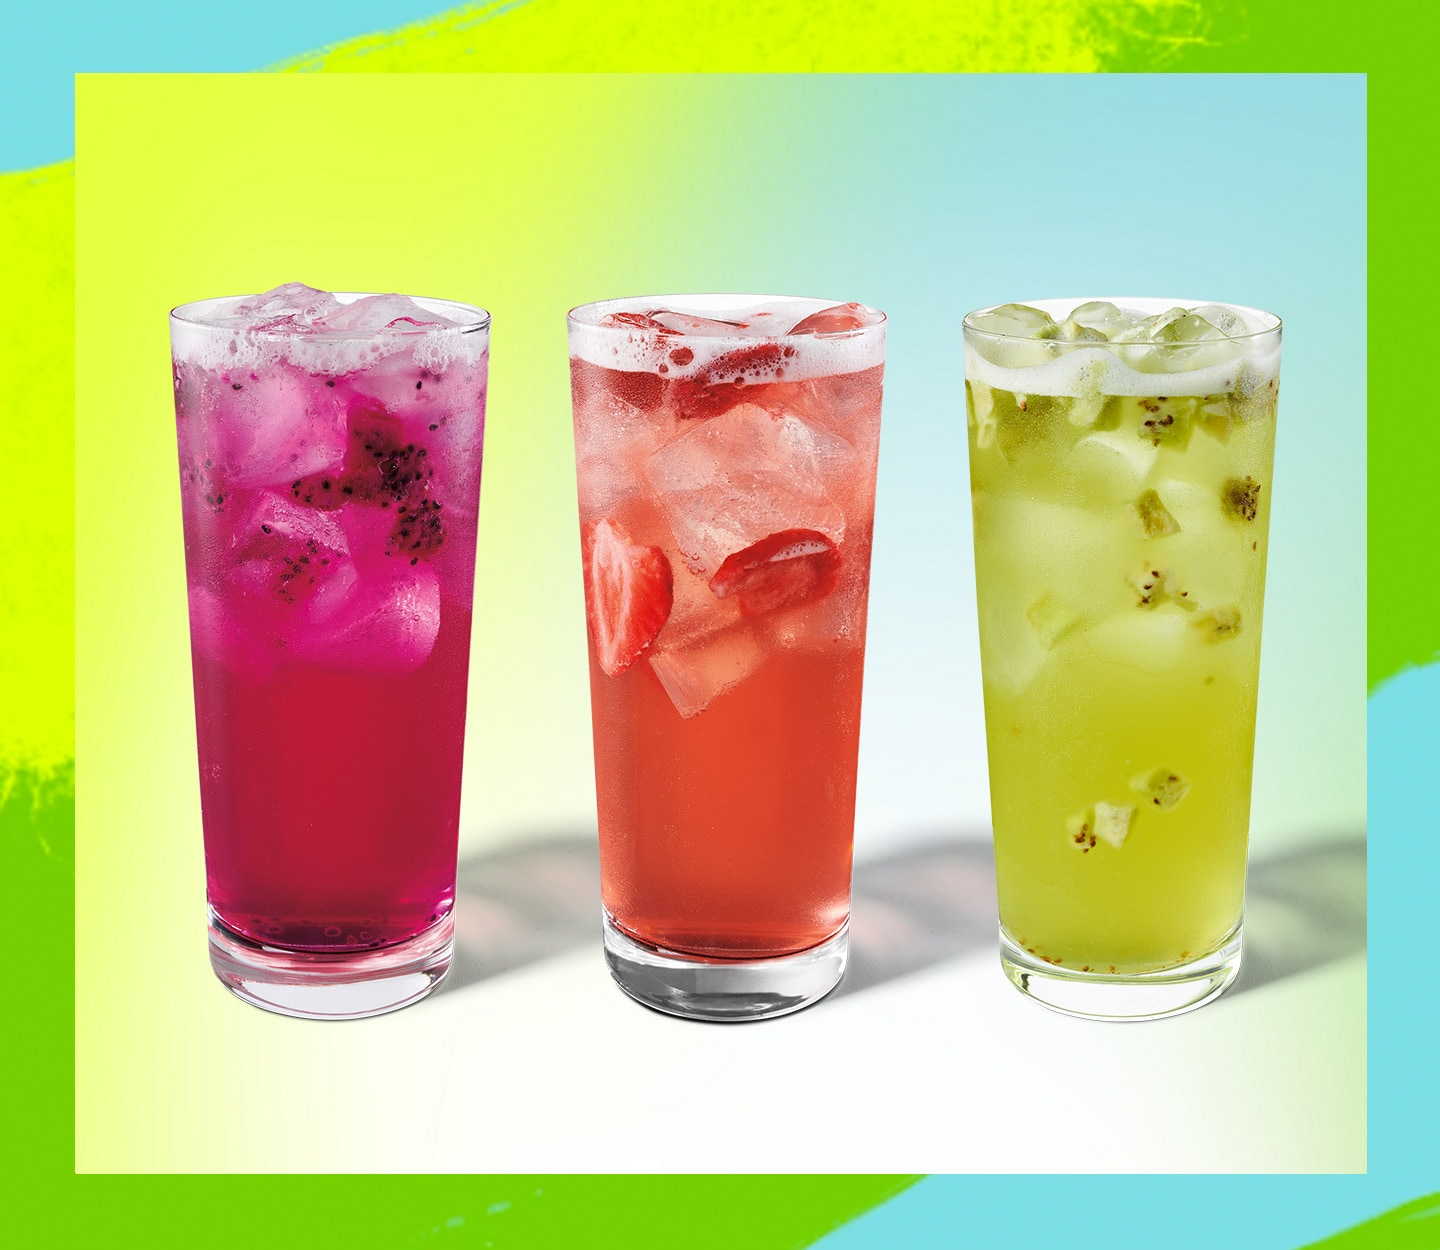 Three colorful iced beverages in glasses.